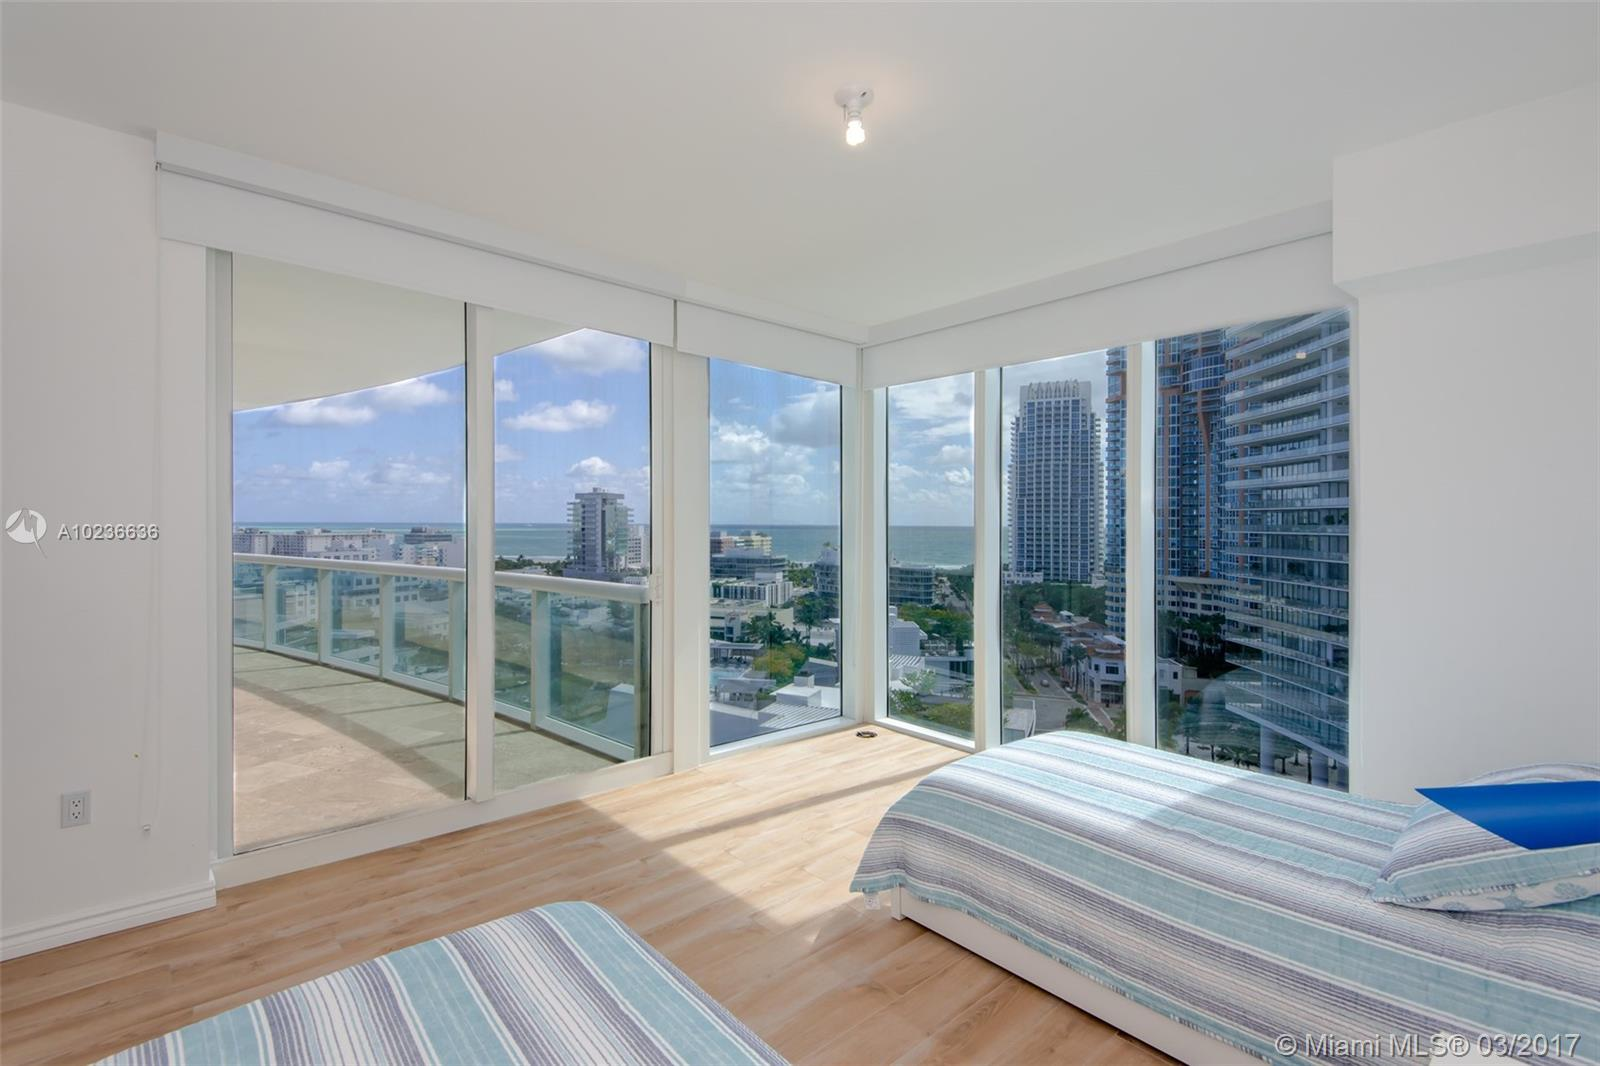 1000 Pointe dr-1507 miami-beach--fl-33139-a10236636-Pic14